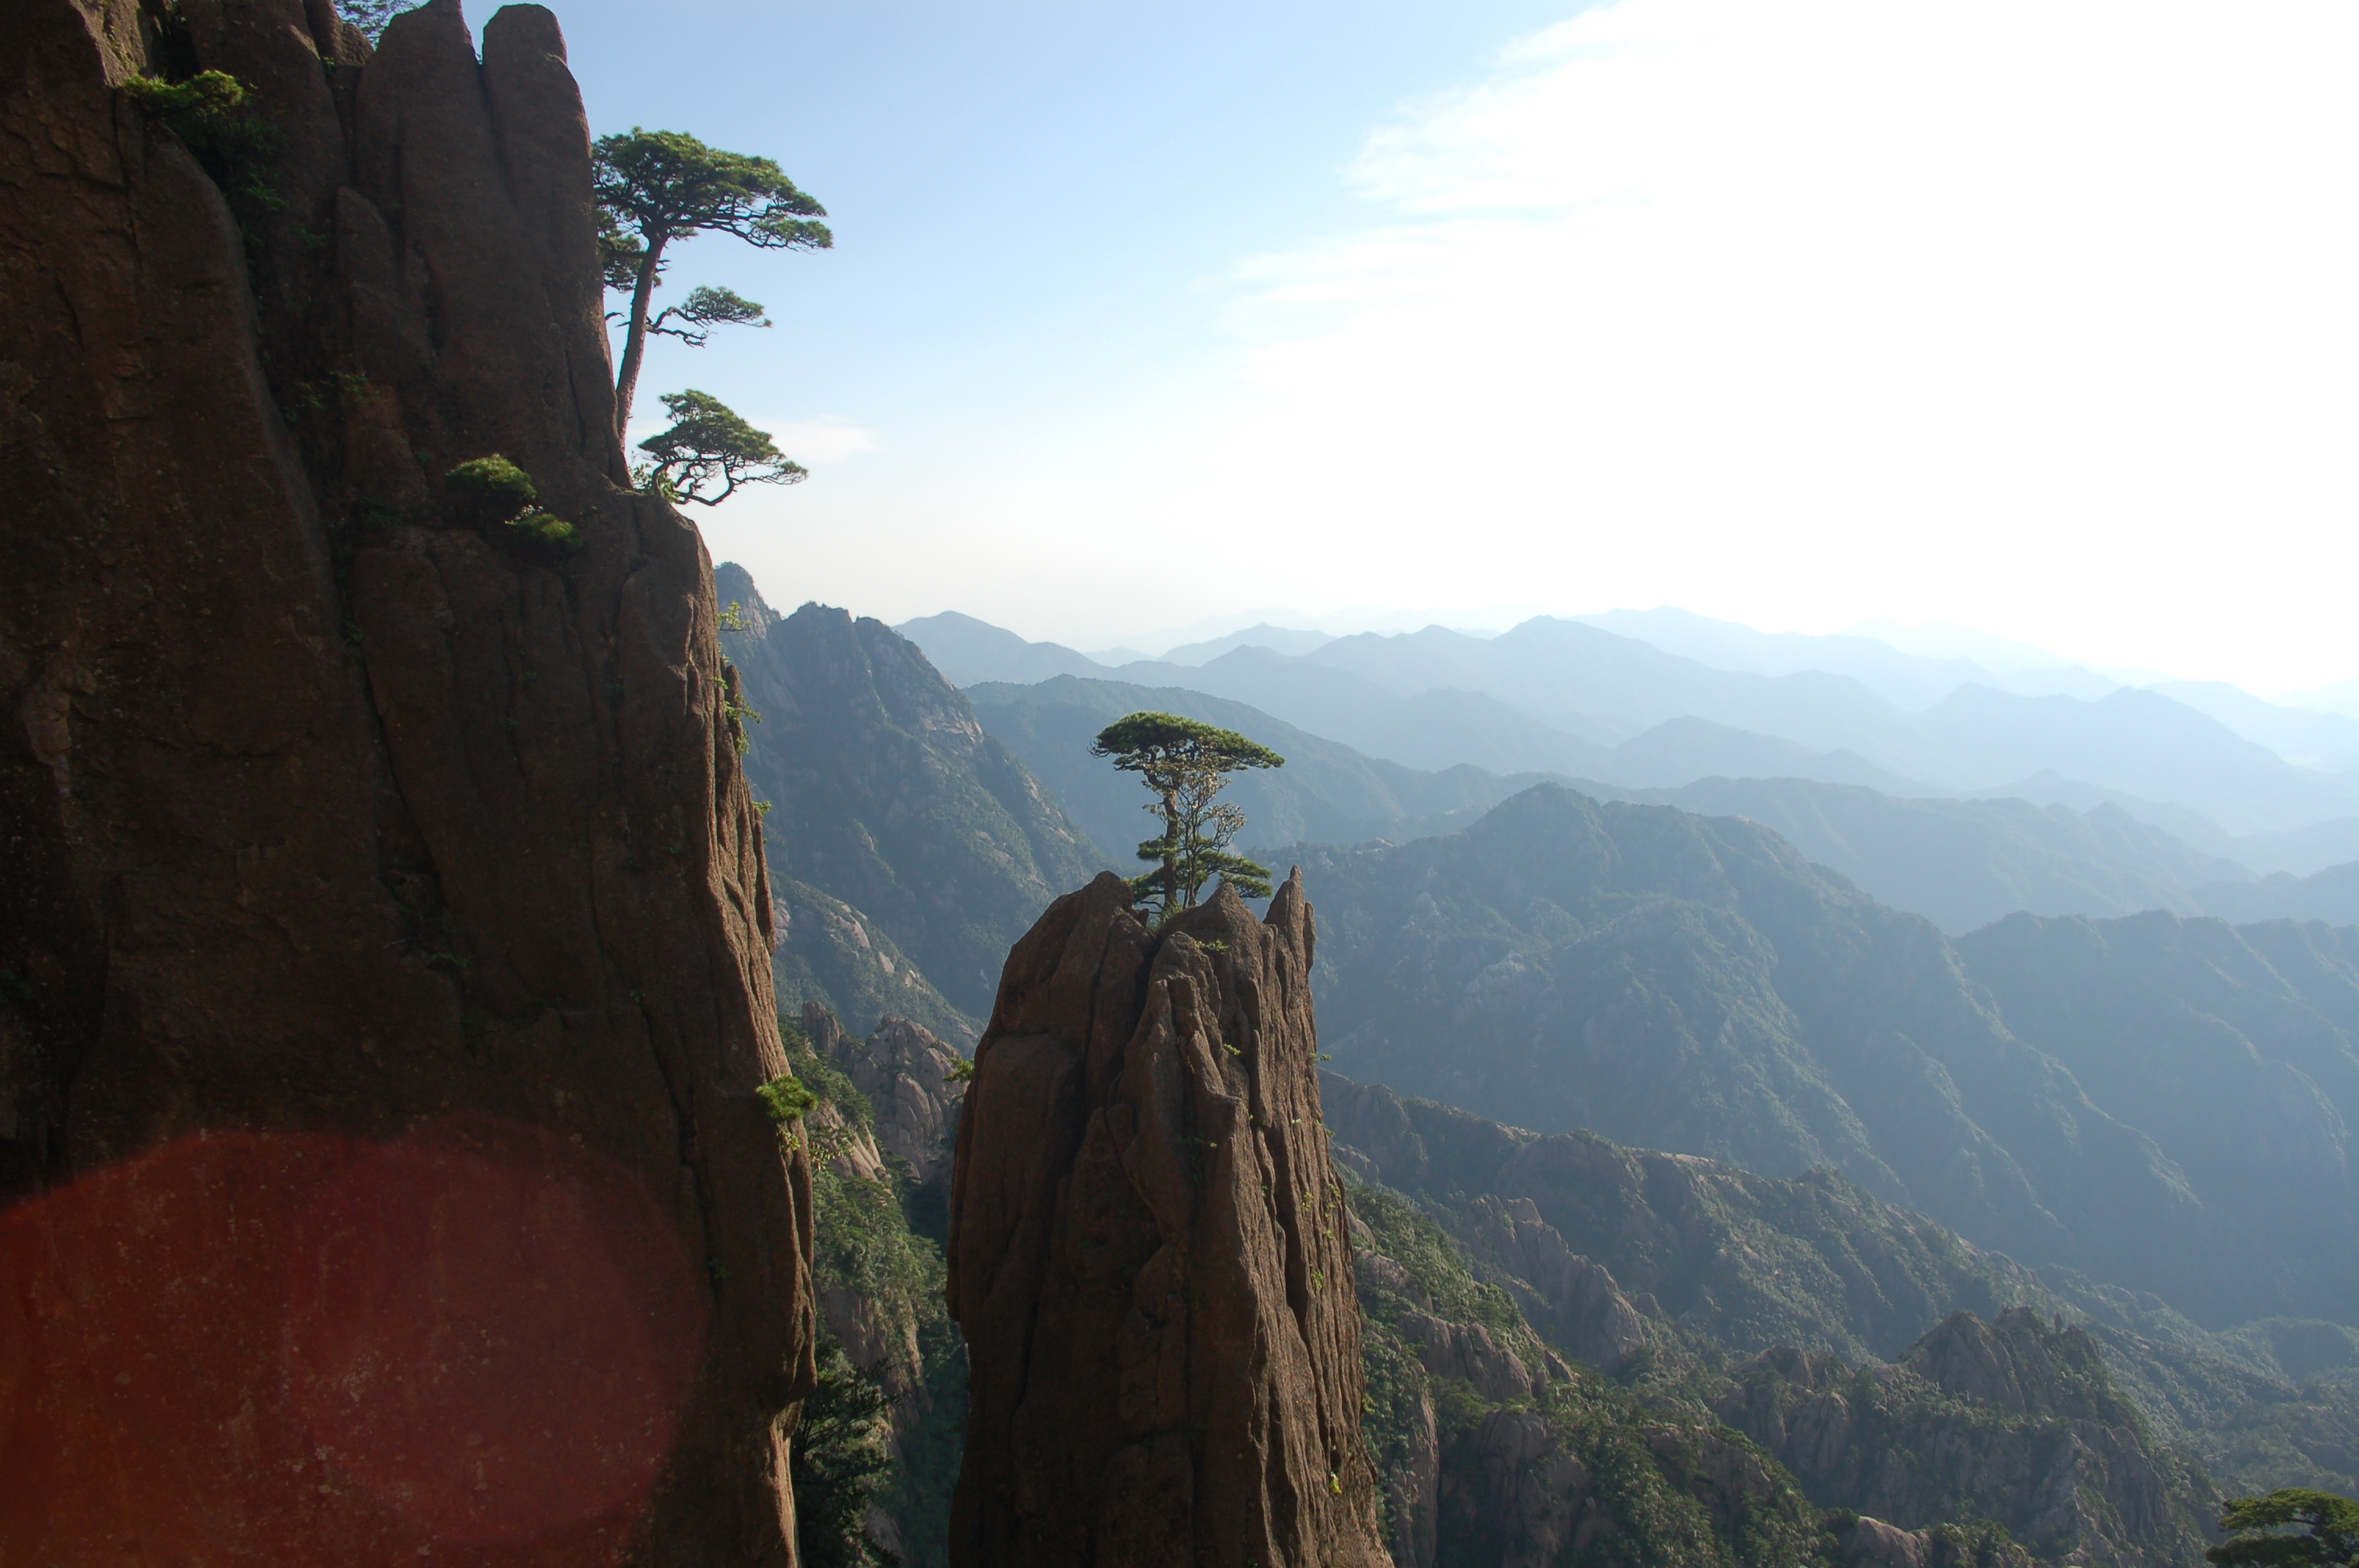 Huang Shan National Park